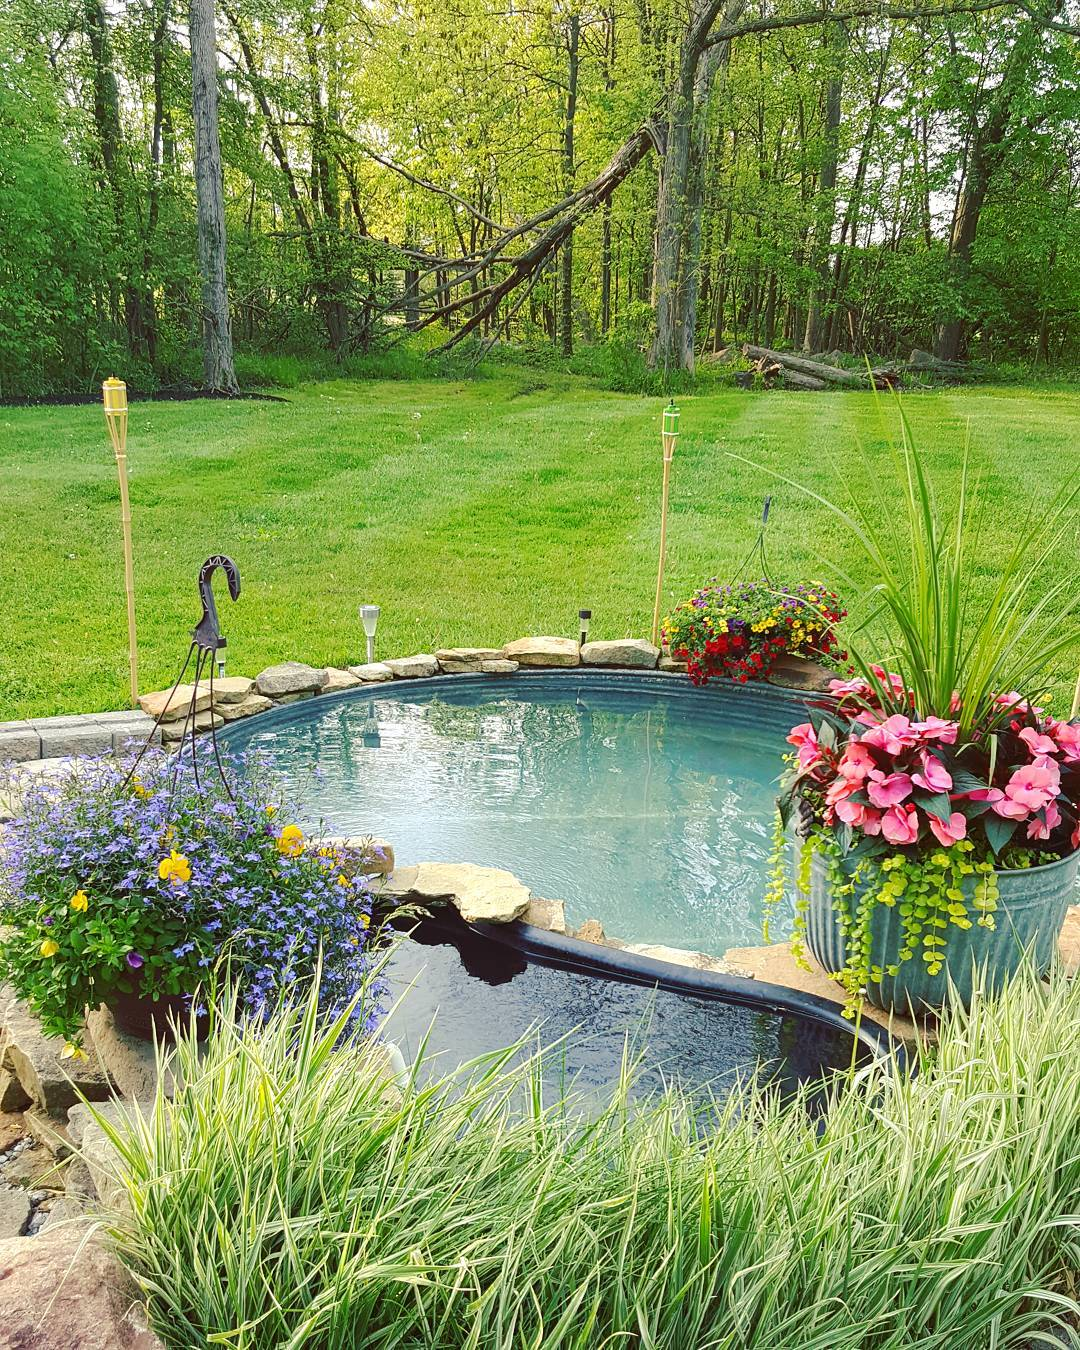 Adding a nashville backyard oasis with a stock tank pool for How to make a pool out of a stock tank